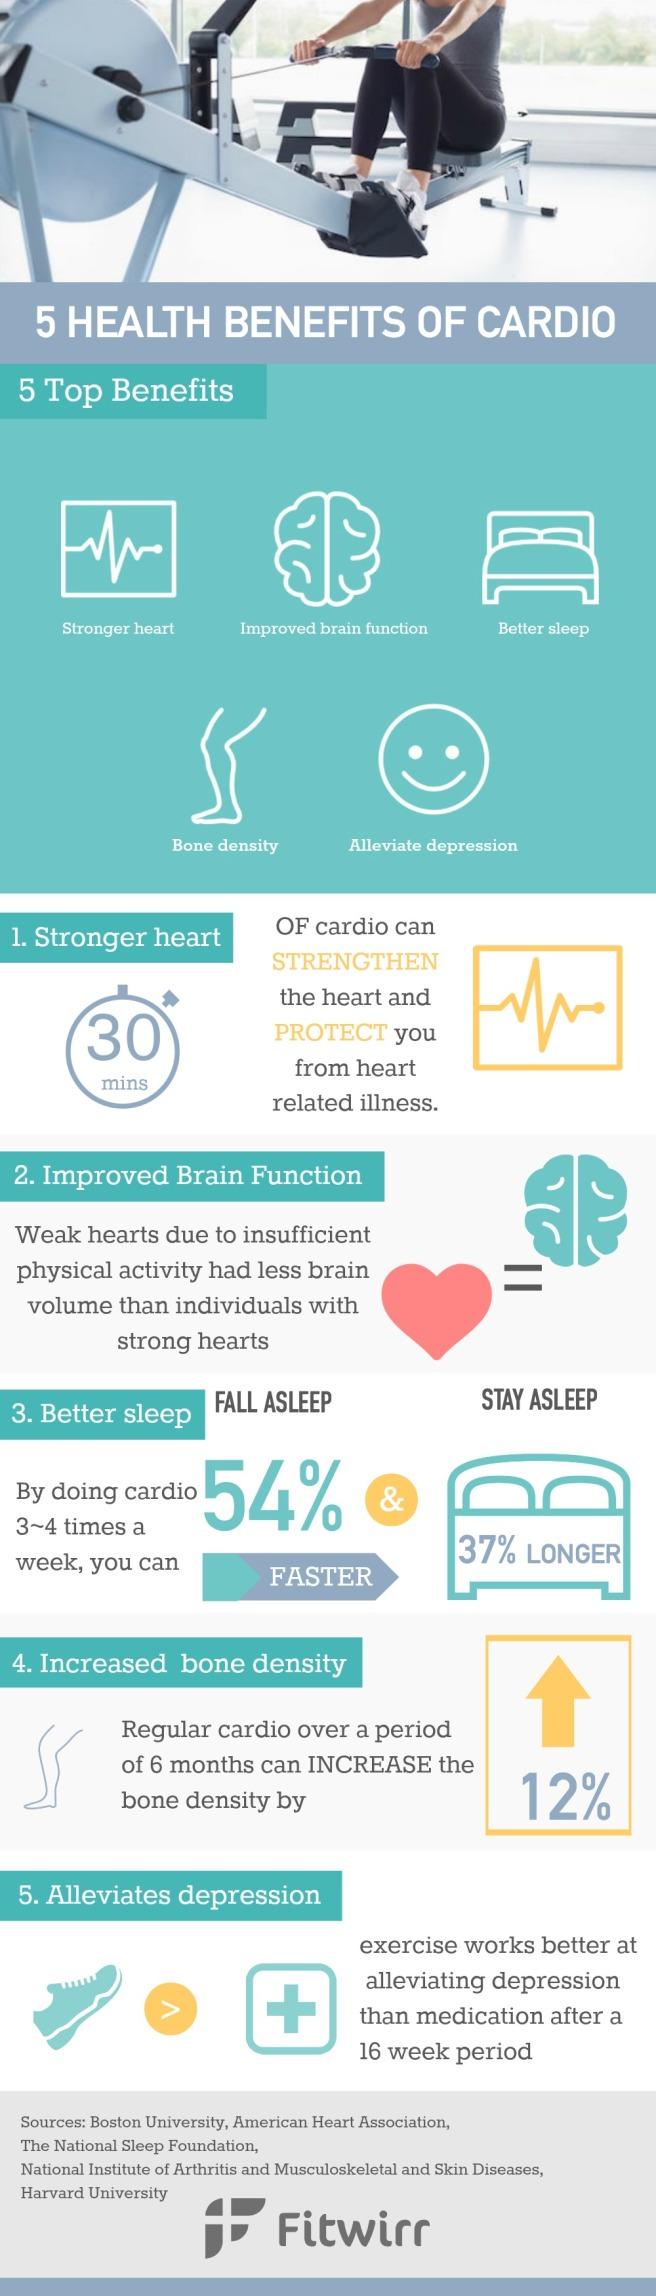 5 benefits of cardio